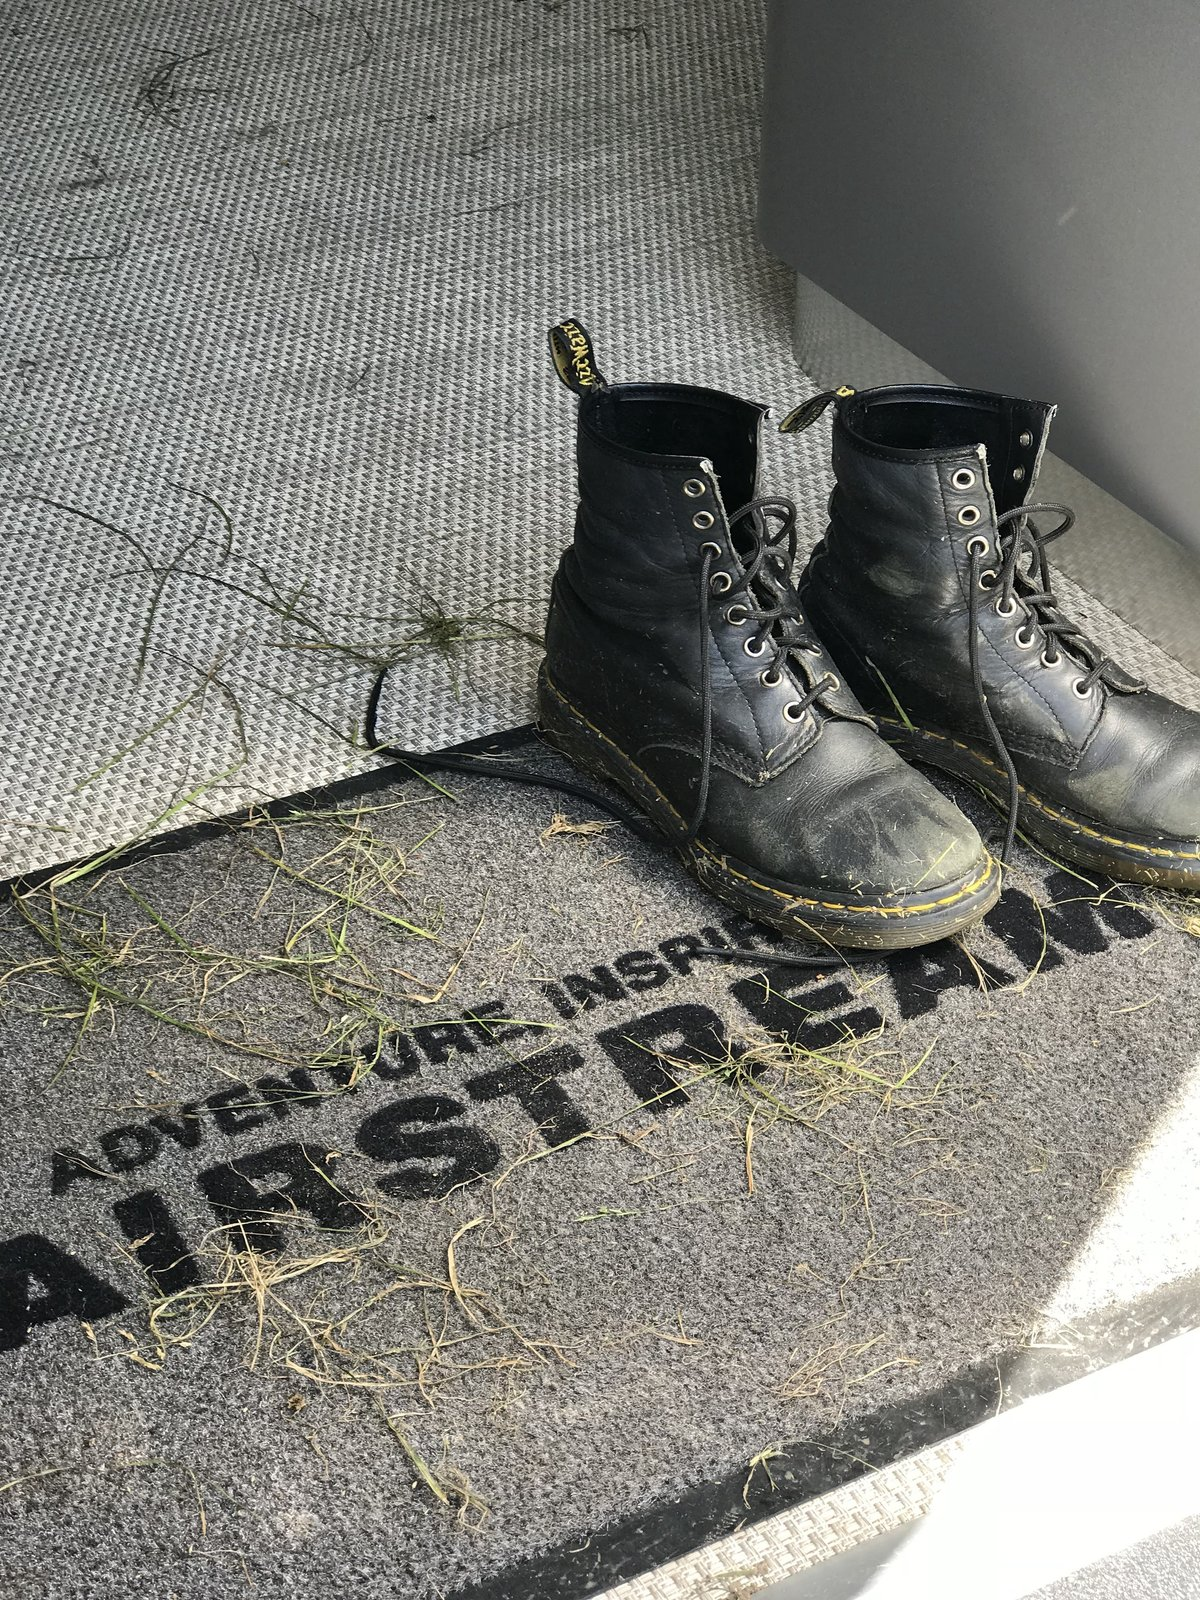 Grass and mud—markers of a successful weekend trip.